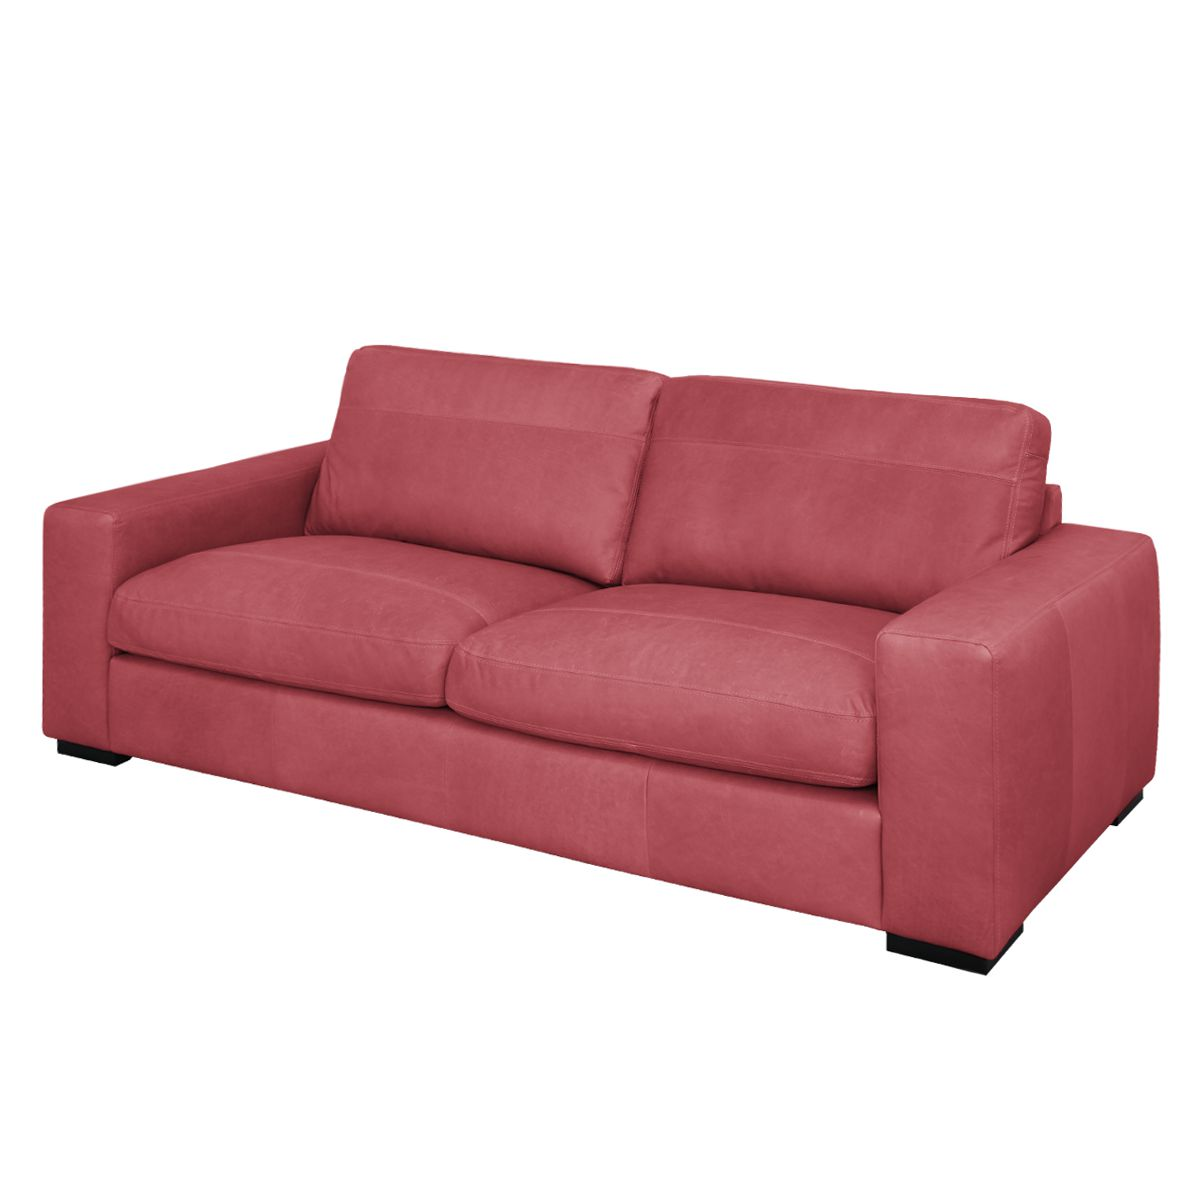 sofa riton 3 sitzer echtleder rot nuovoform. Black Bedroom Furniture Sets. Home Design Ideas